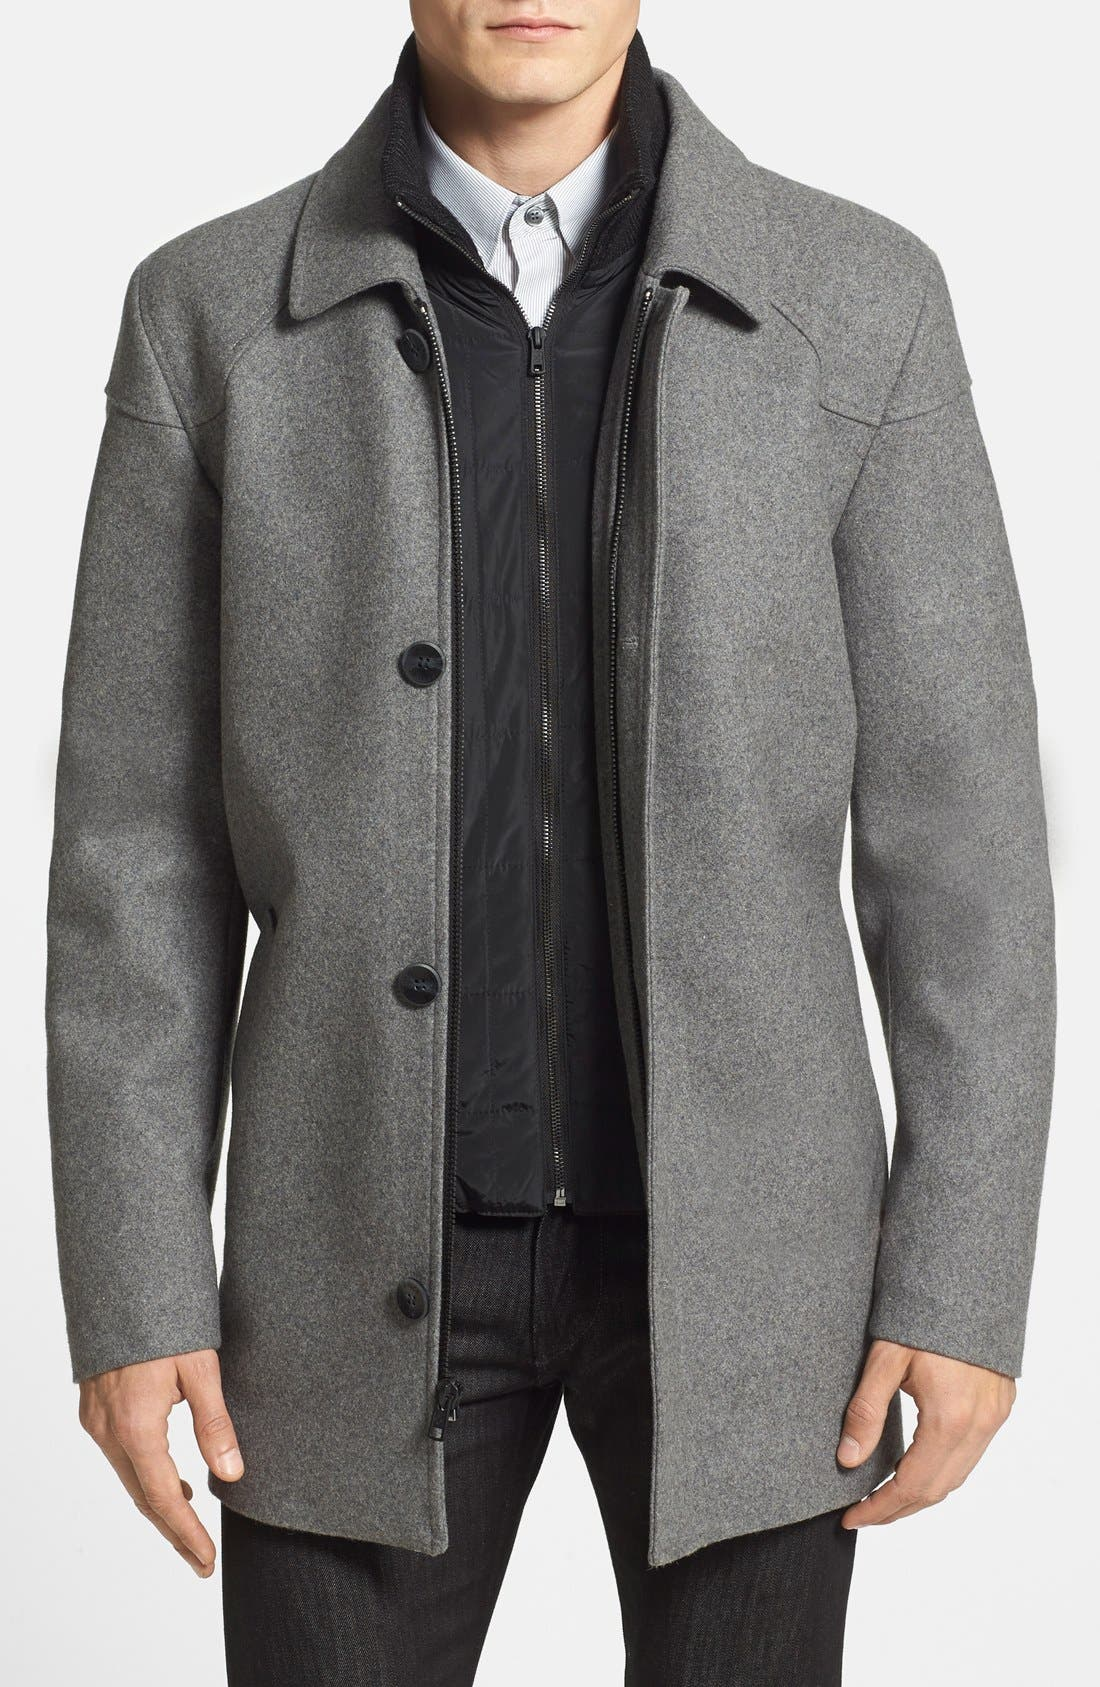 VINCE CAMUTO, Melton Car Coat with Removable Bib, Main thumbnail 1, color, HEATHER GREY